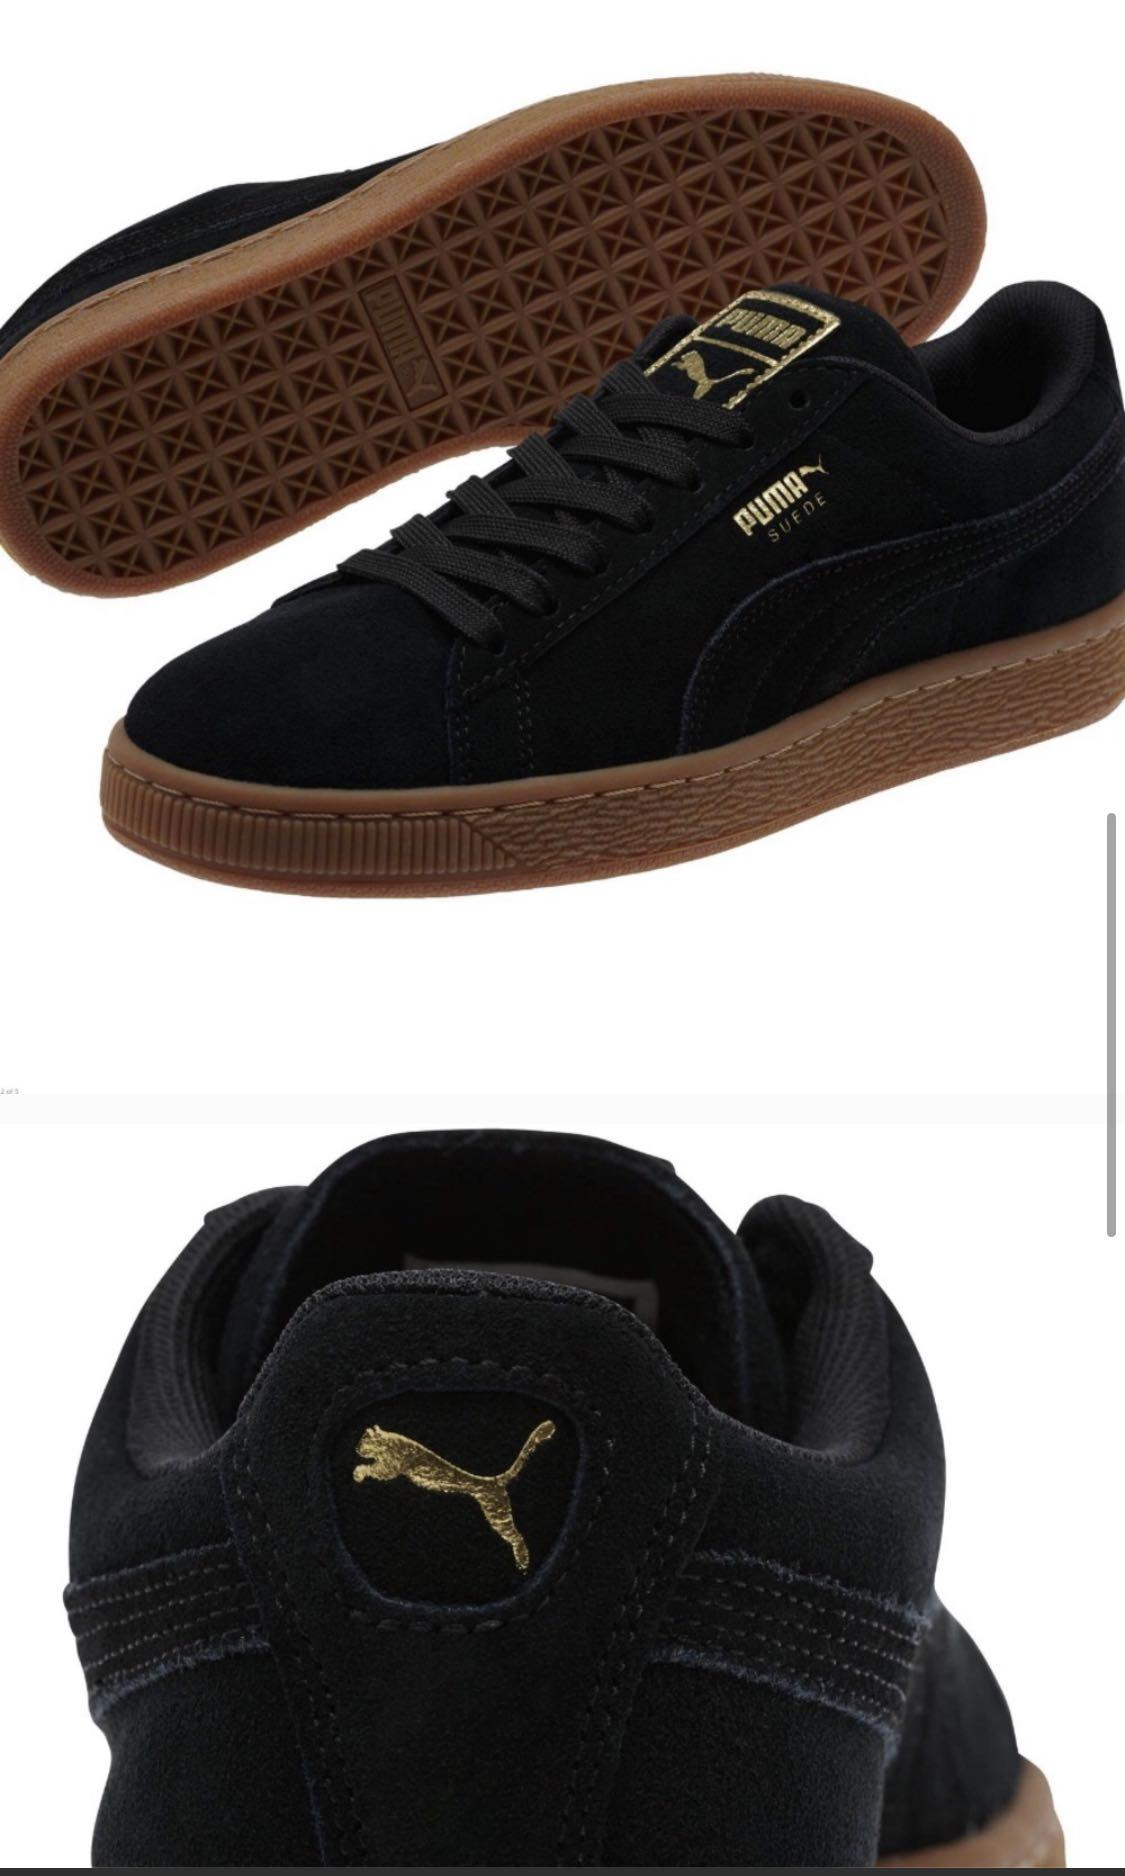 Puma suede black classic with a gold metallic line